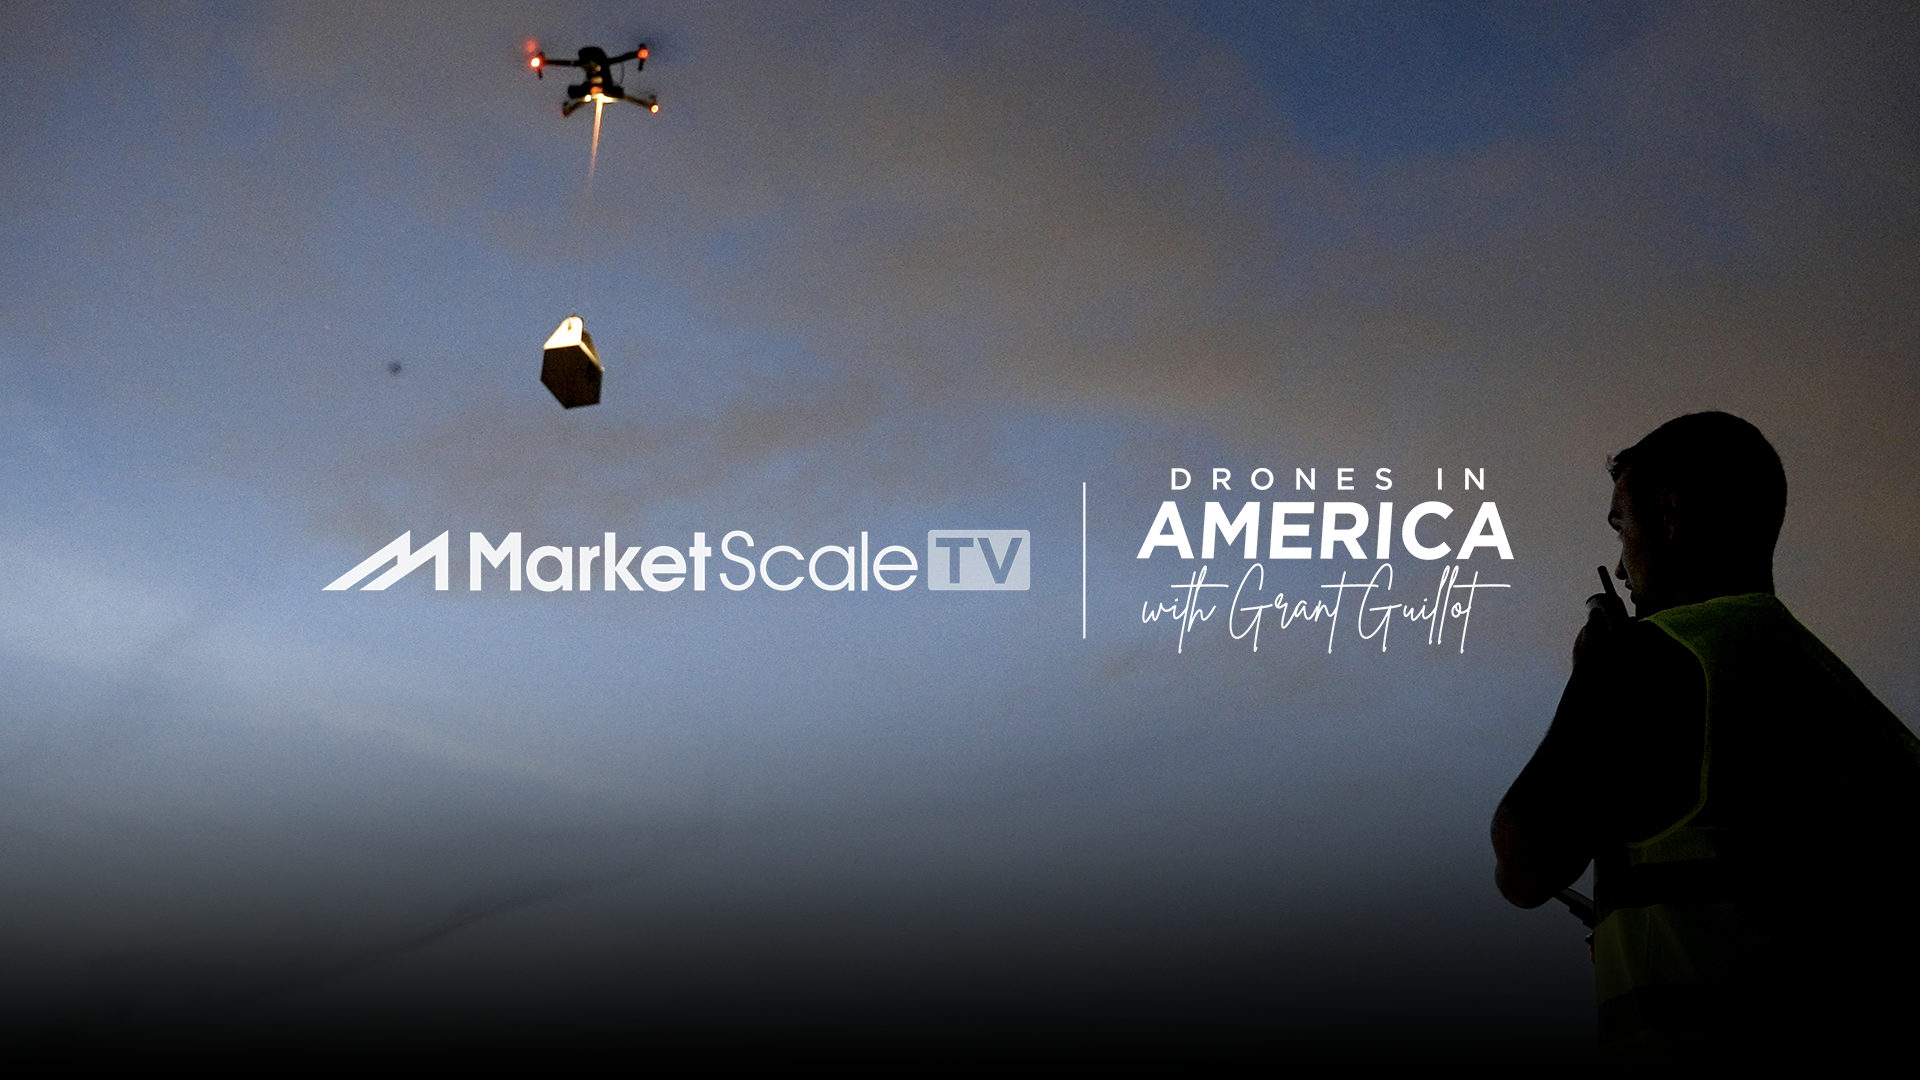 When Beignets Fly: Drones in America